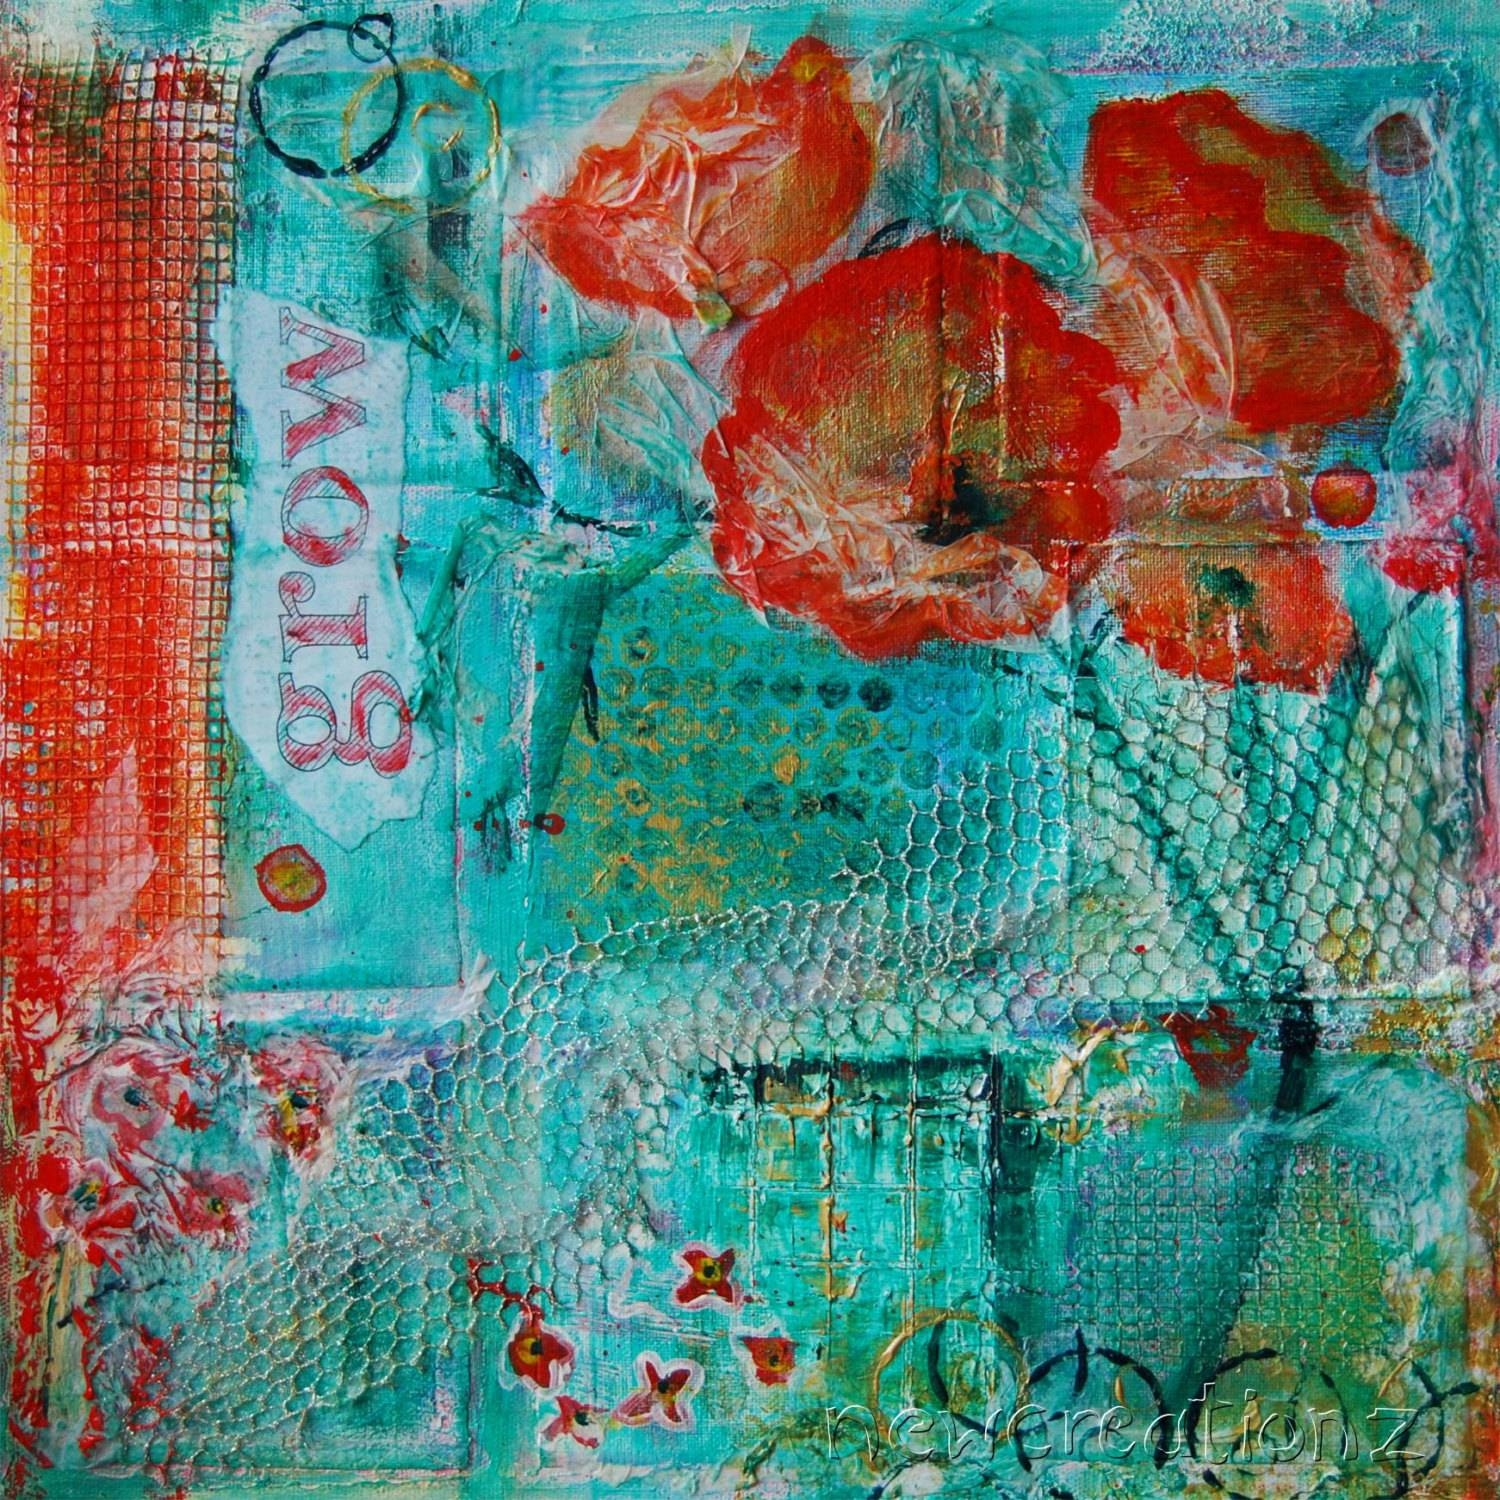 Contemporary Fine Art Mixed Media Painting Print Flower Word Throughout Most Current Orange And Turquoise Wall Art (View 10 of 20)